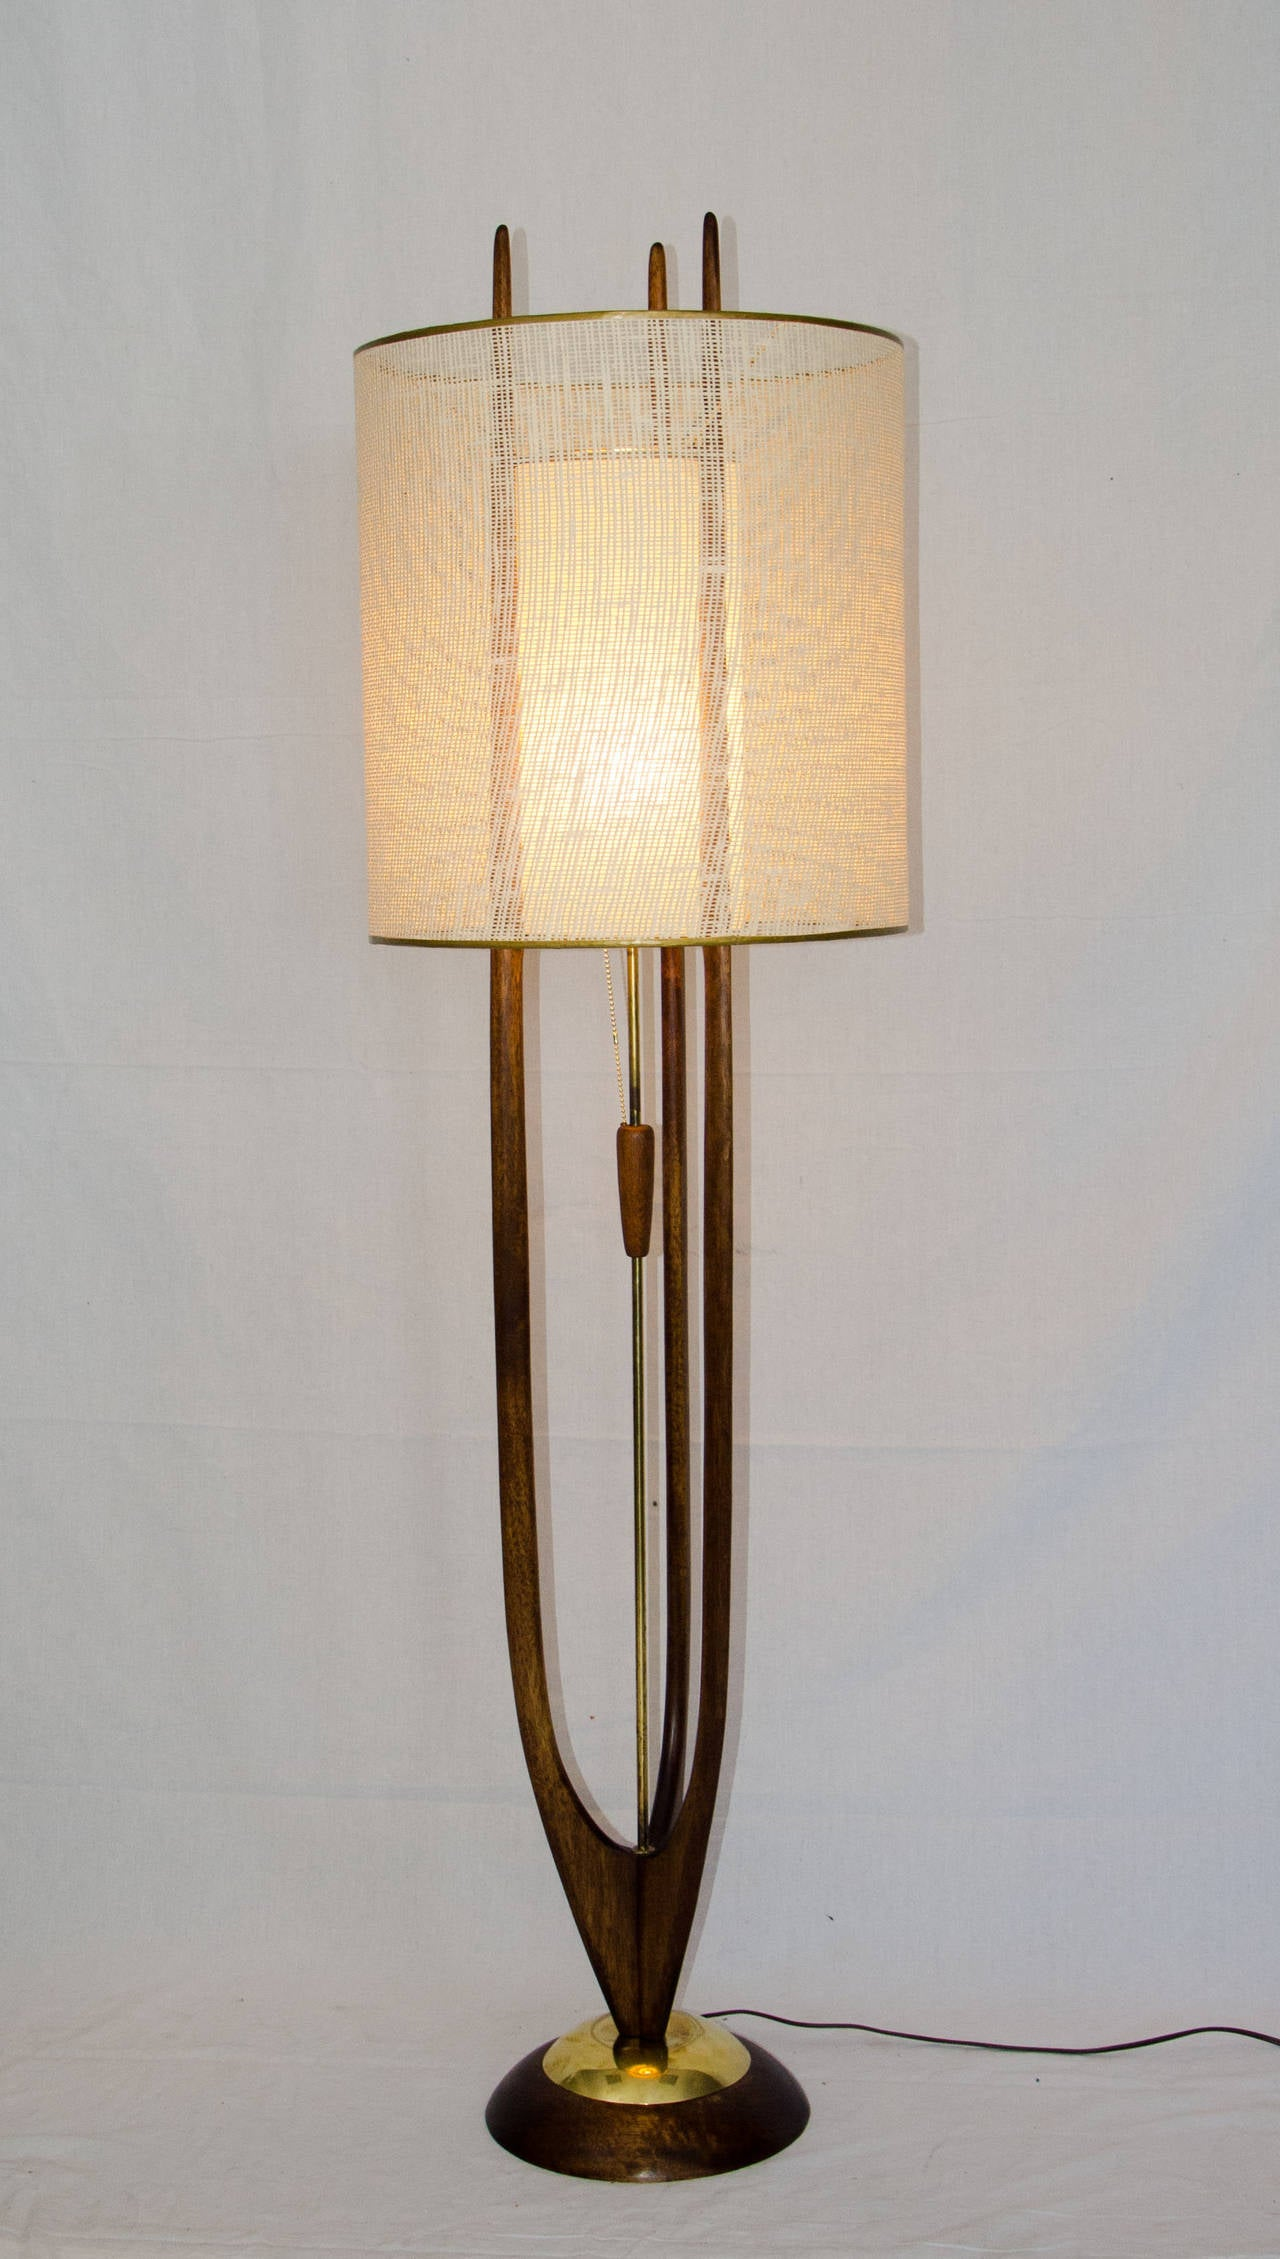 Mid century modeline floor lamp at 1stdibs for Where can i buy vintage furniture